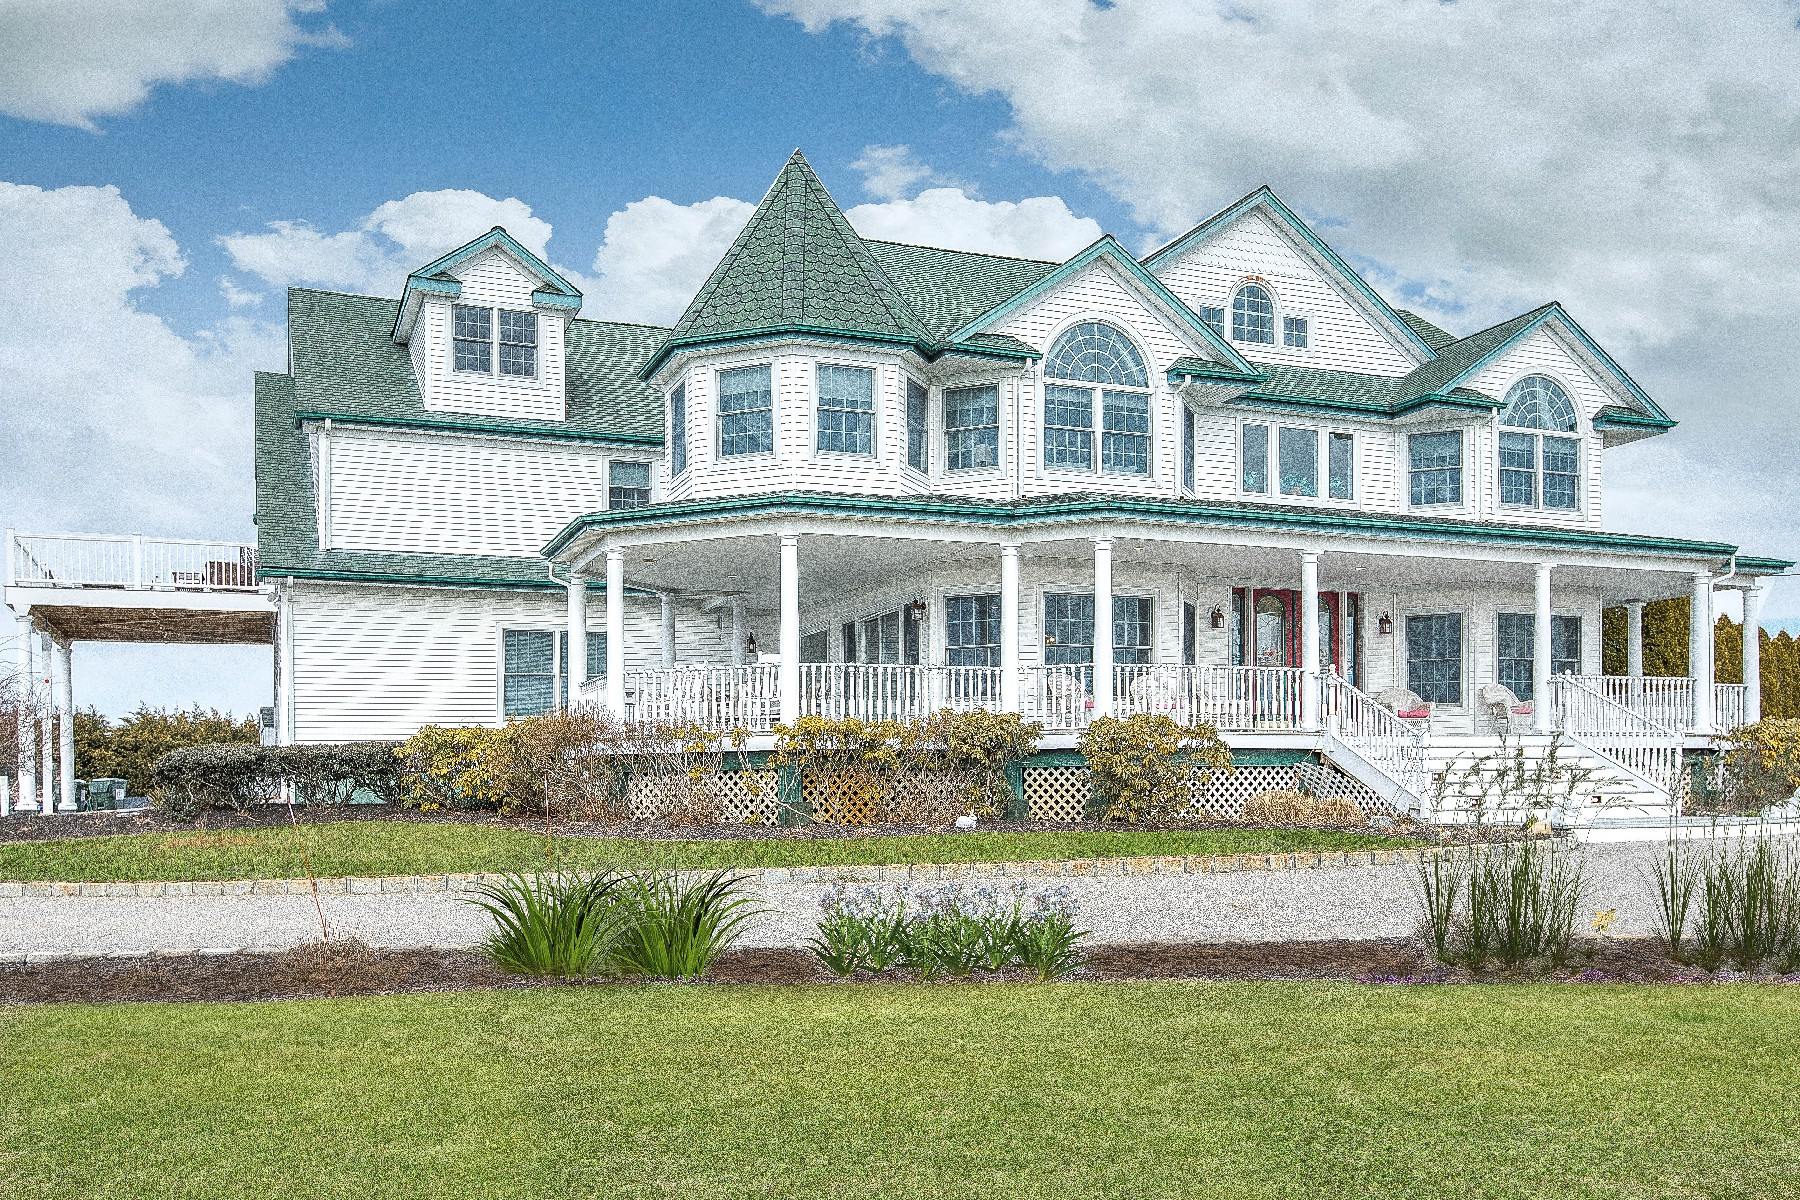 Single Family Home for Sale at 57 S Bay Ave , Eastport, NY 11941 Eastport, New York, 11941 United States